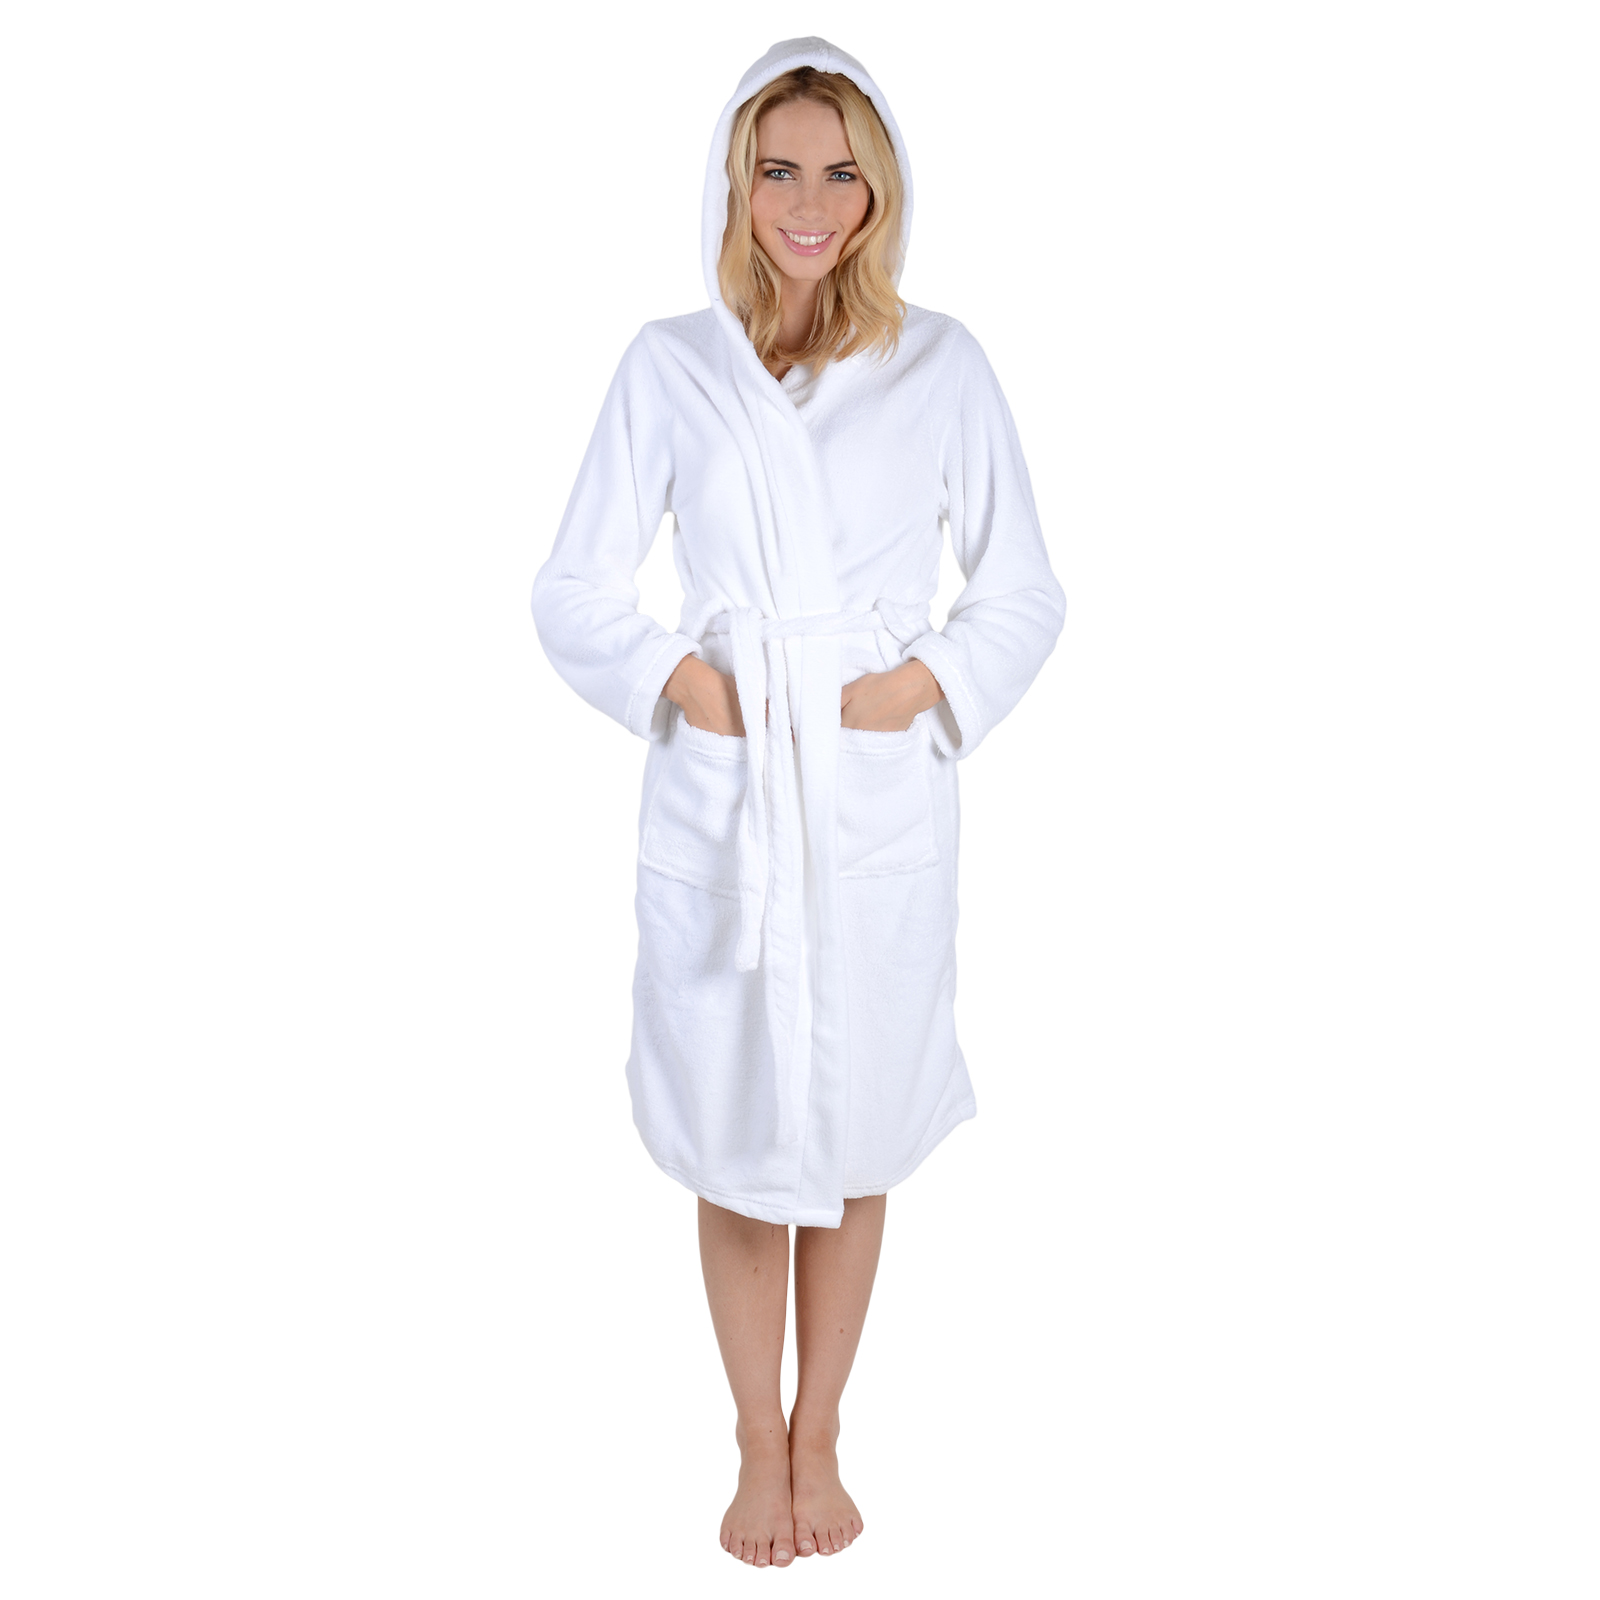 Dressing Gowns at Very. Wrap up your nightwear collection with a dressing gown from our range. For maximum comfort, go for snug styles in cosy fabrics, such as soft fleece.